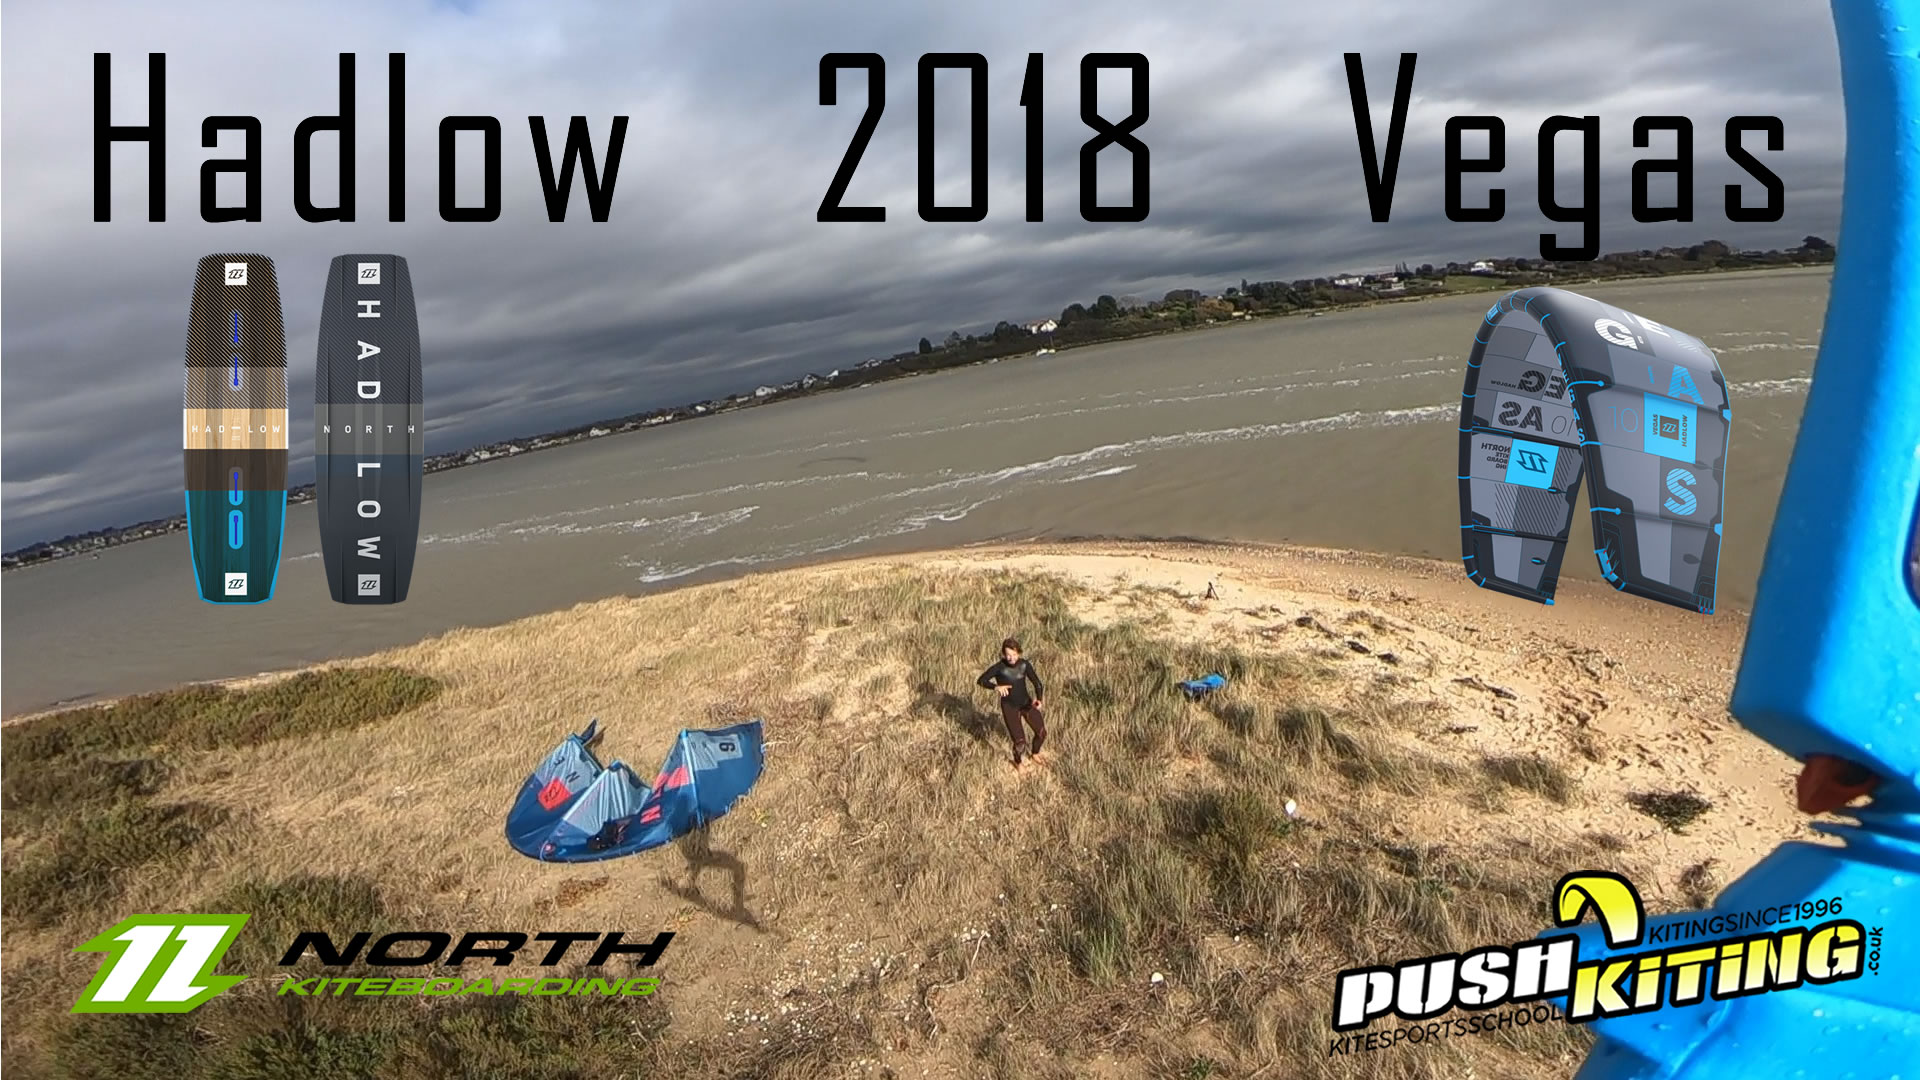 2018 North Vegas Kite and Hadlow wake style kiteboard Video and Review